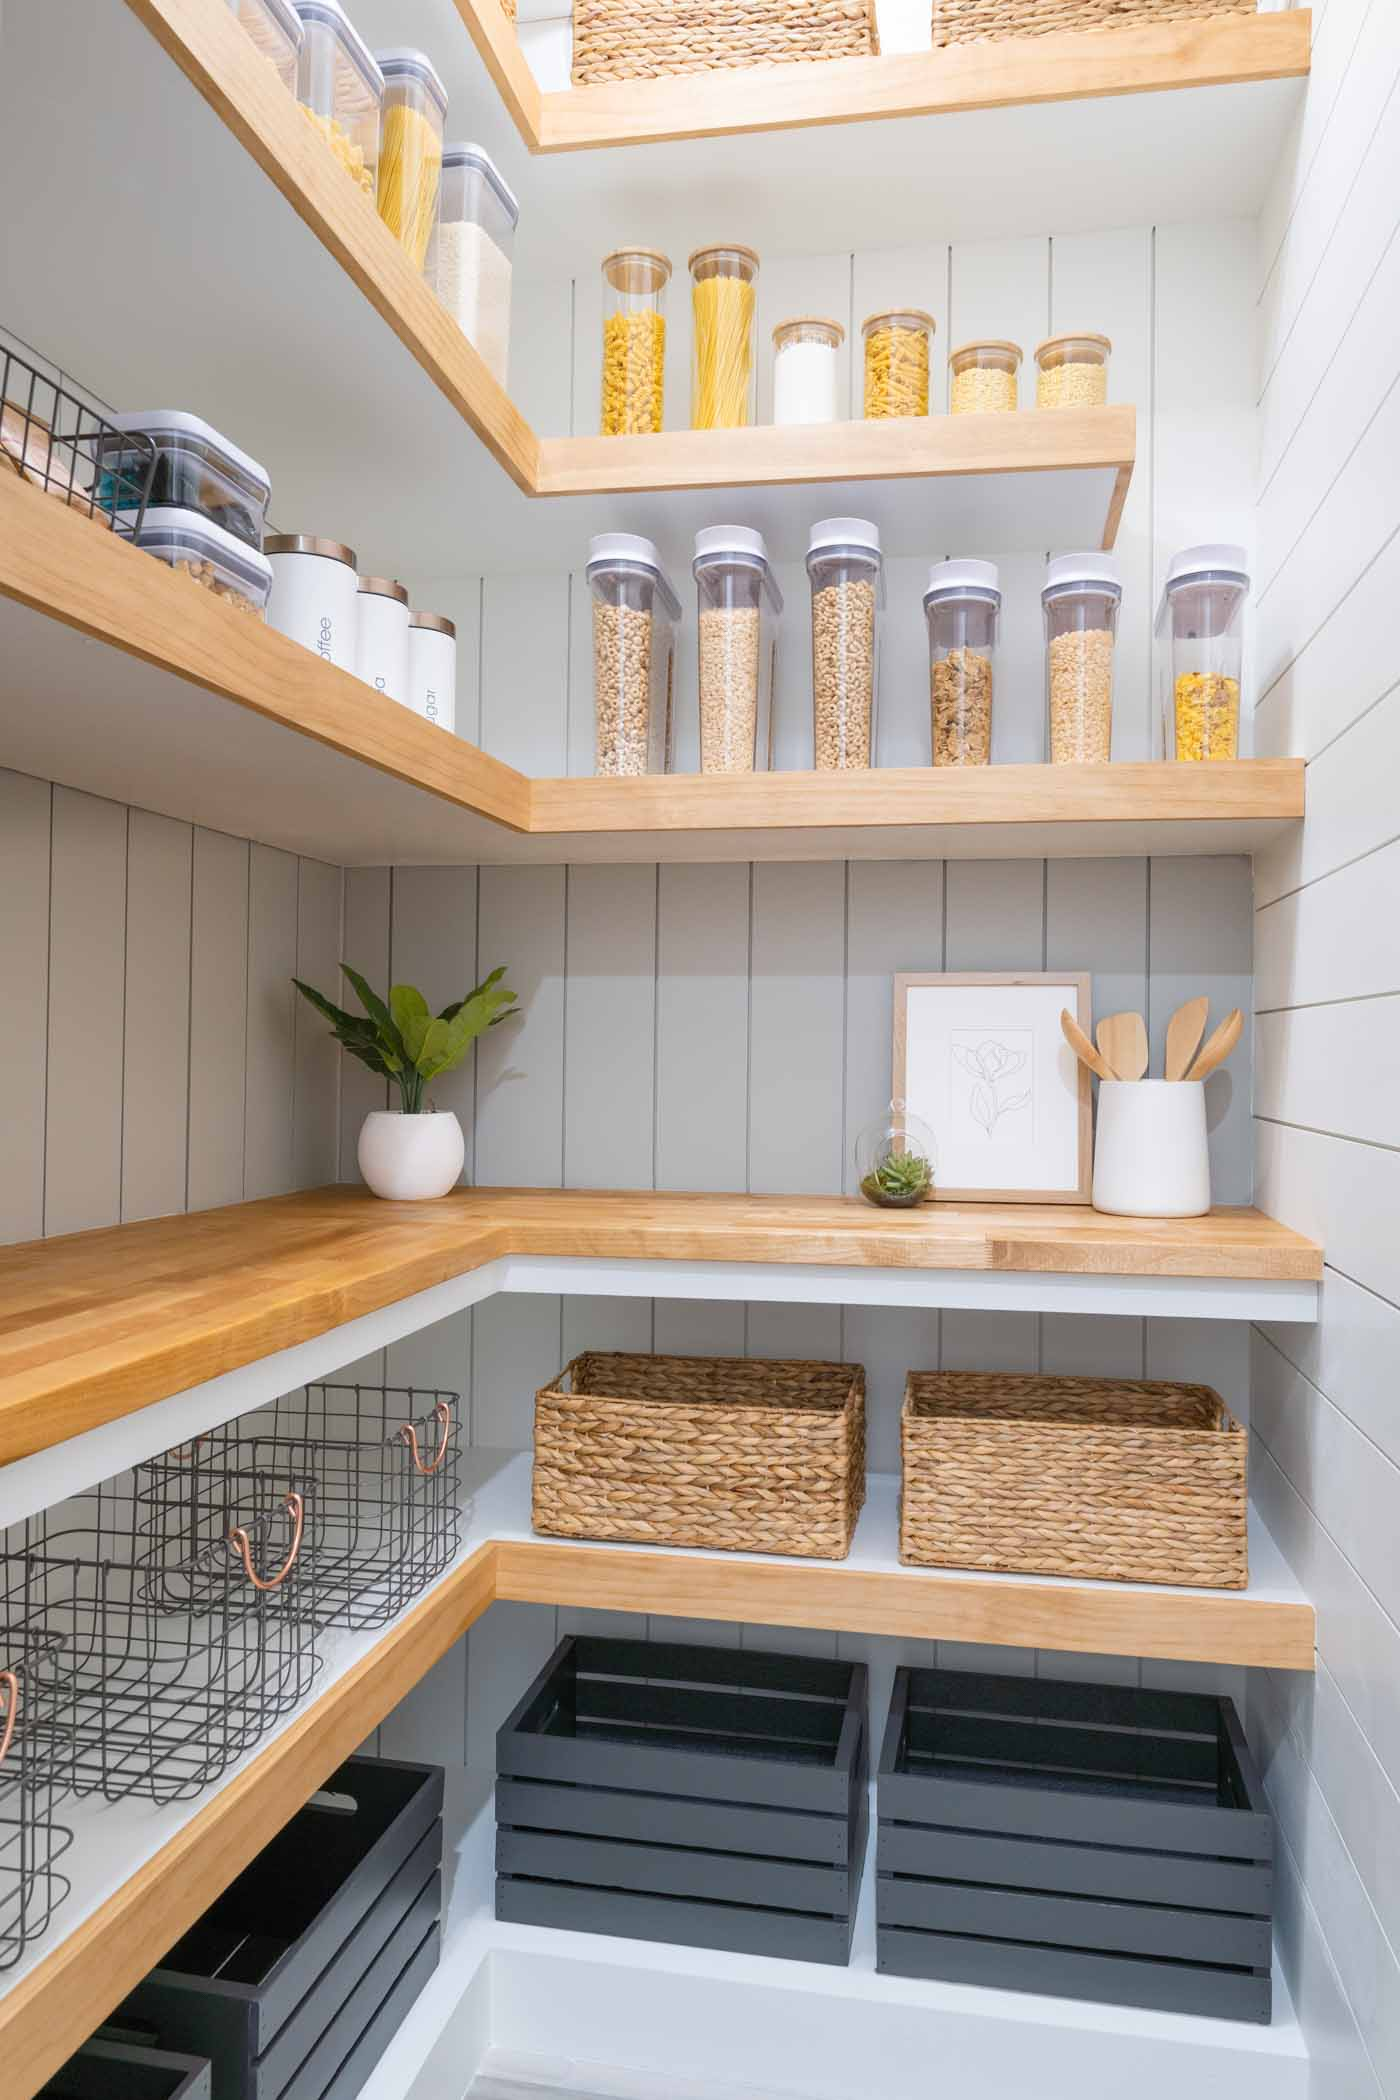 a picture of a pantry with white and gray shiplap walls, brown and white shelves, a wooden countertop, brown baskets, glass storage jars with bamboo lids, white canisters, wooden crates and metal baskets